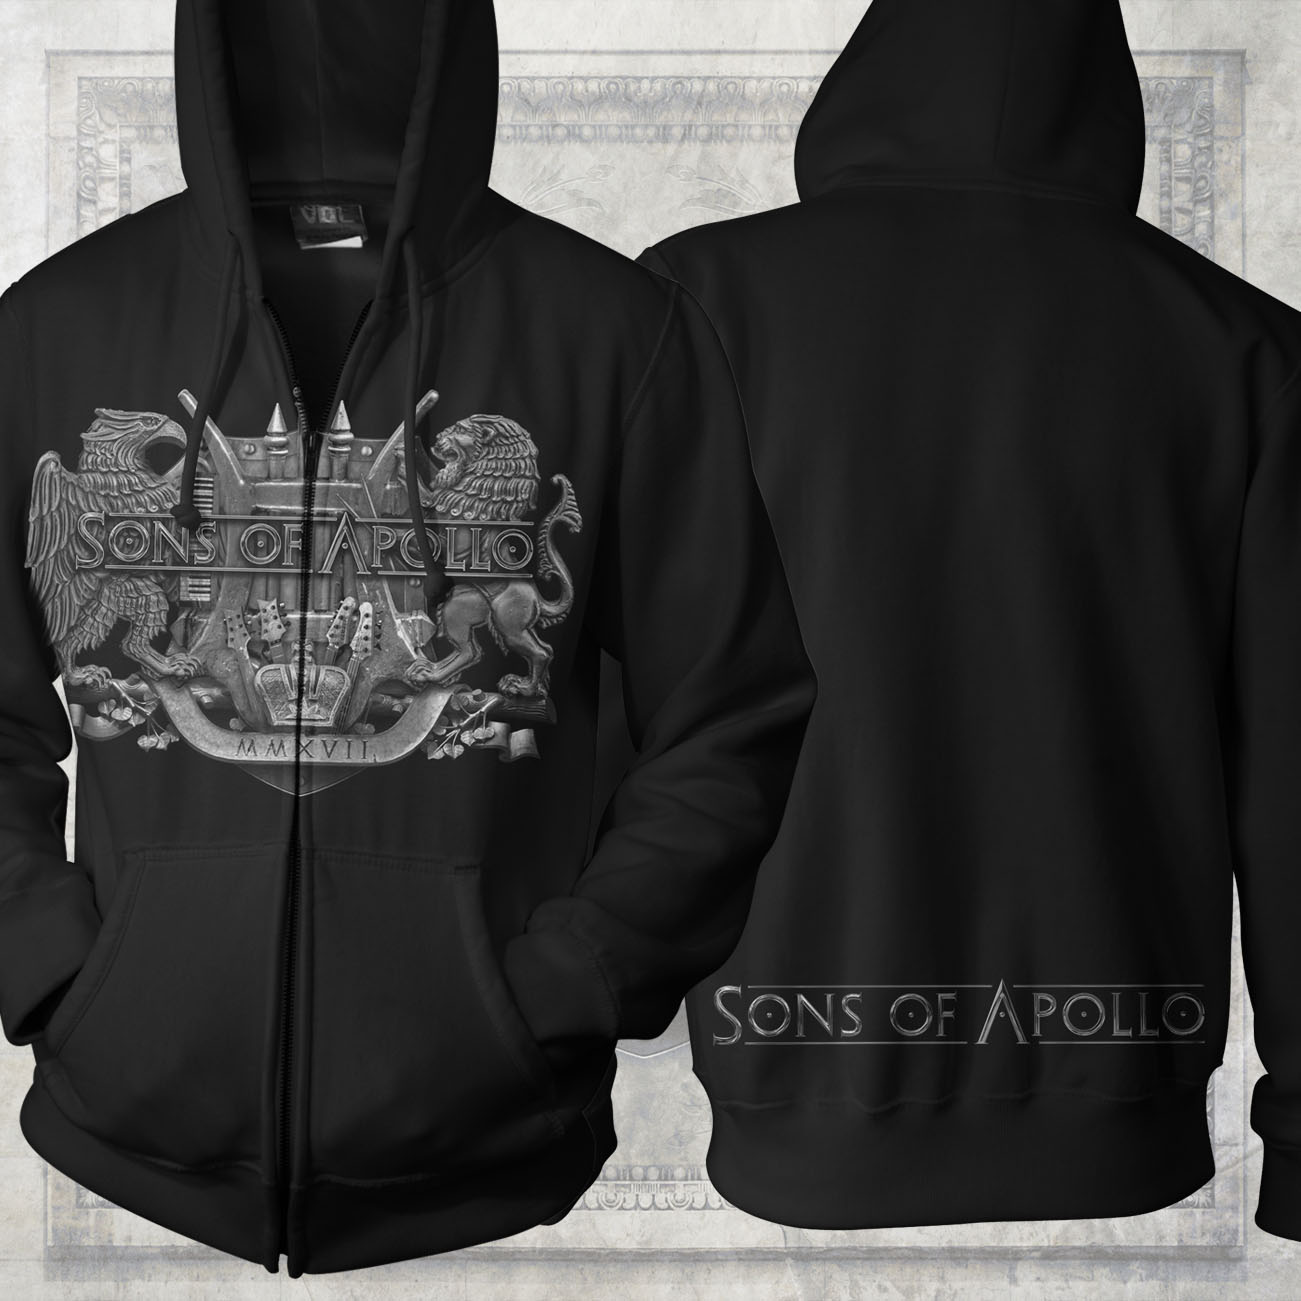 Sons of Apollo - 'Crest' Zipped Hoody - Sons of Apollo